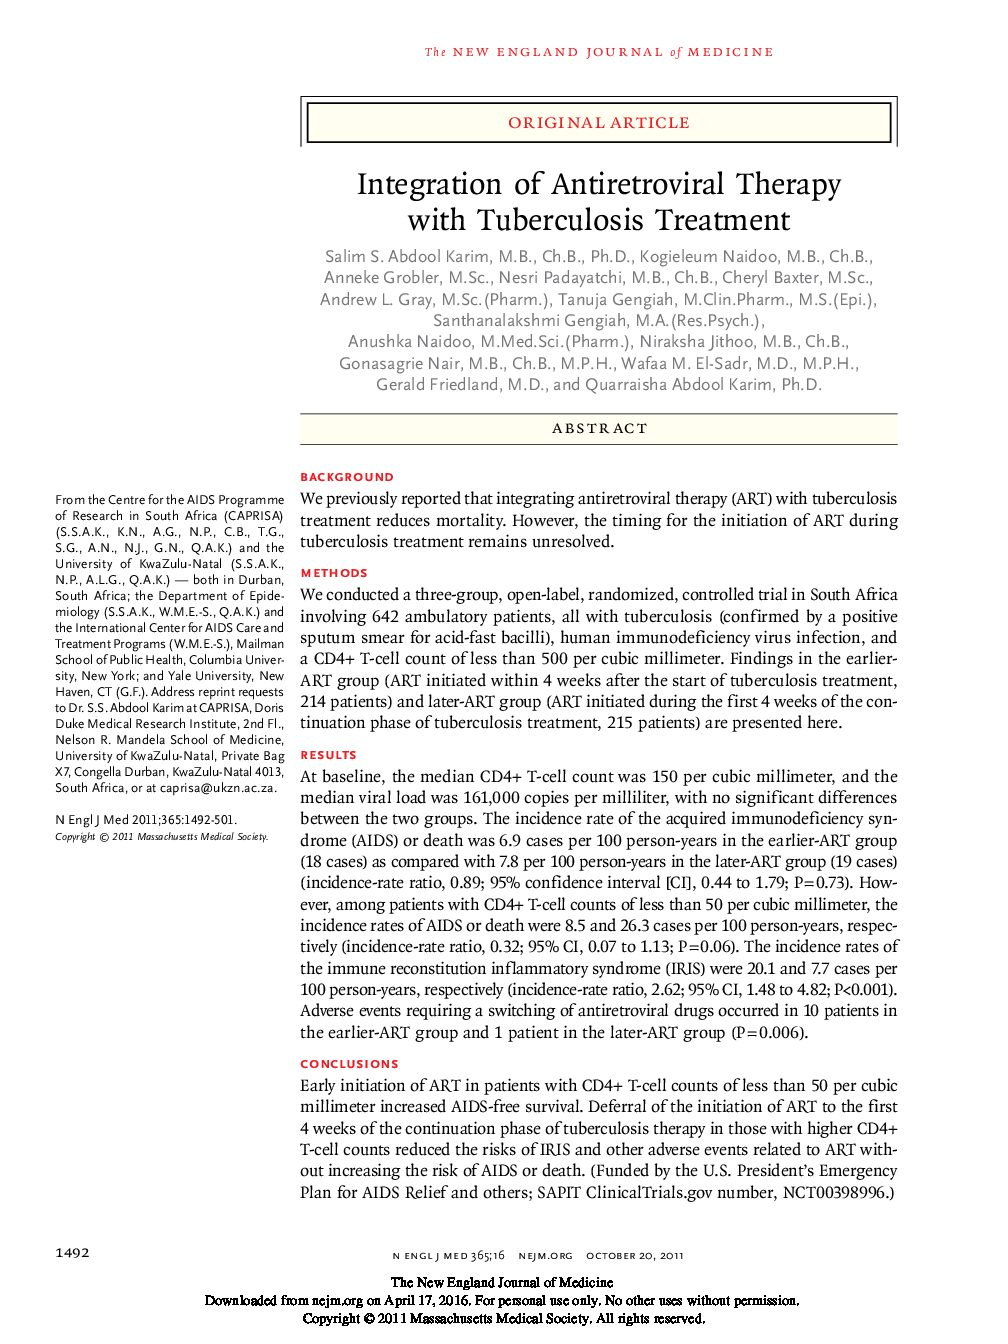 Integration of Antiretroviral Therapy with Tuberculosis Treatment